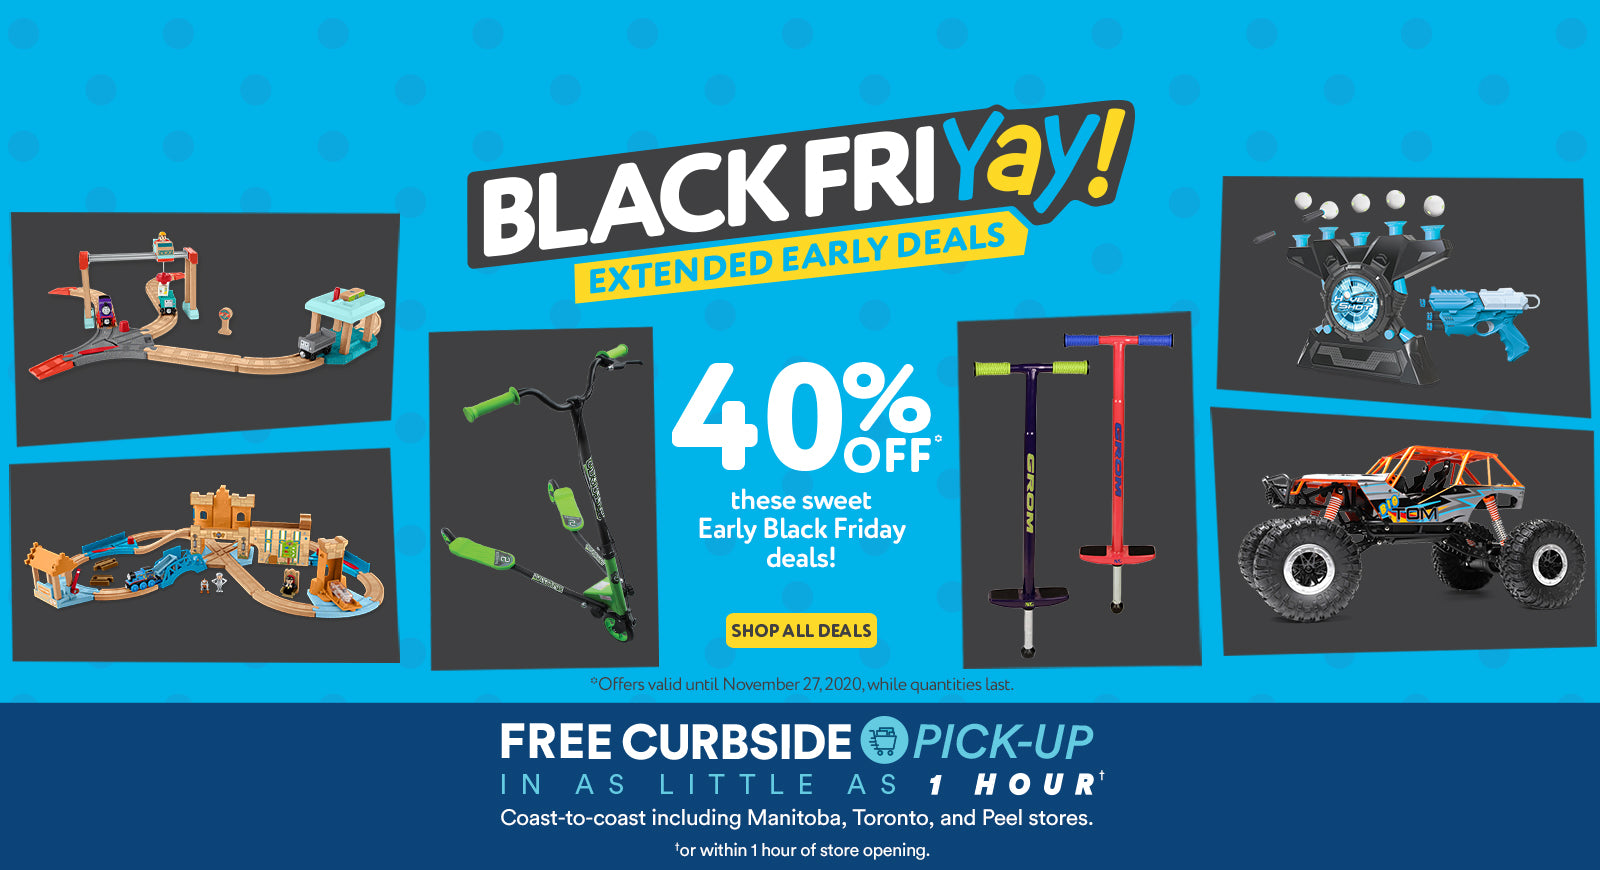 Black Friday Early Deals Extended